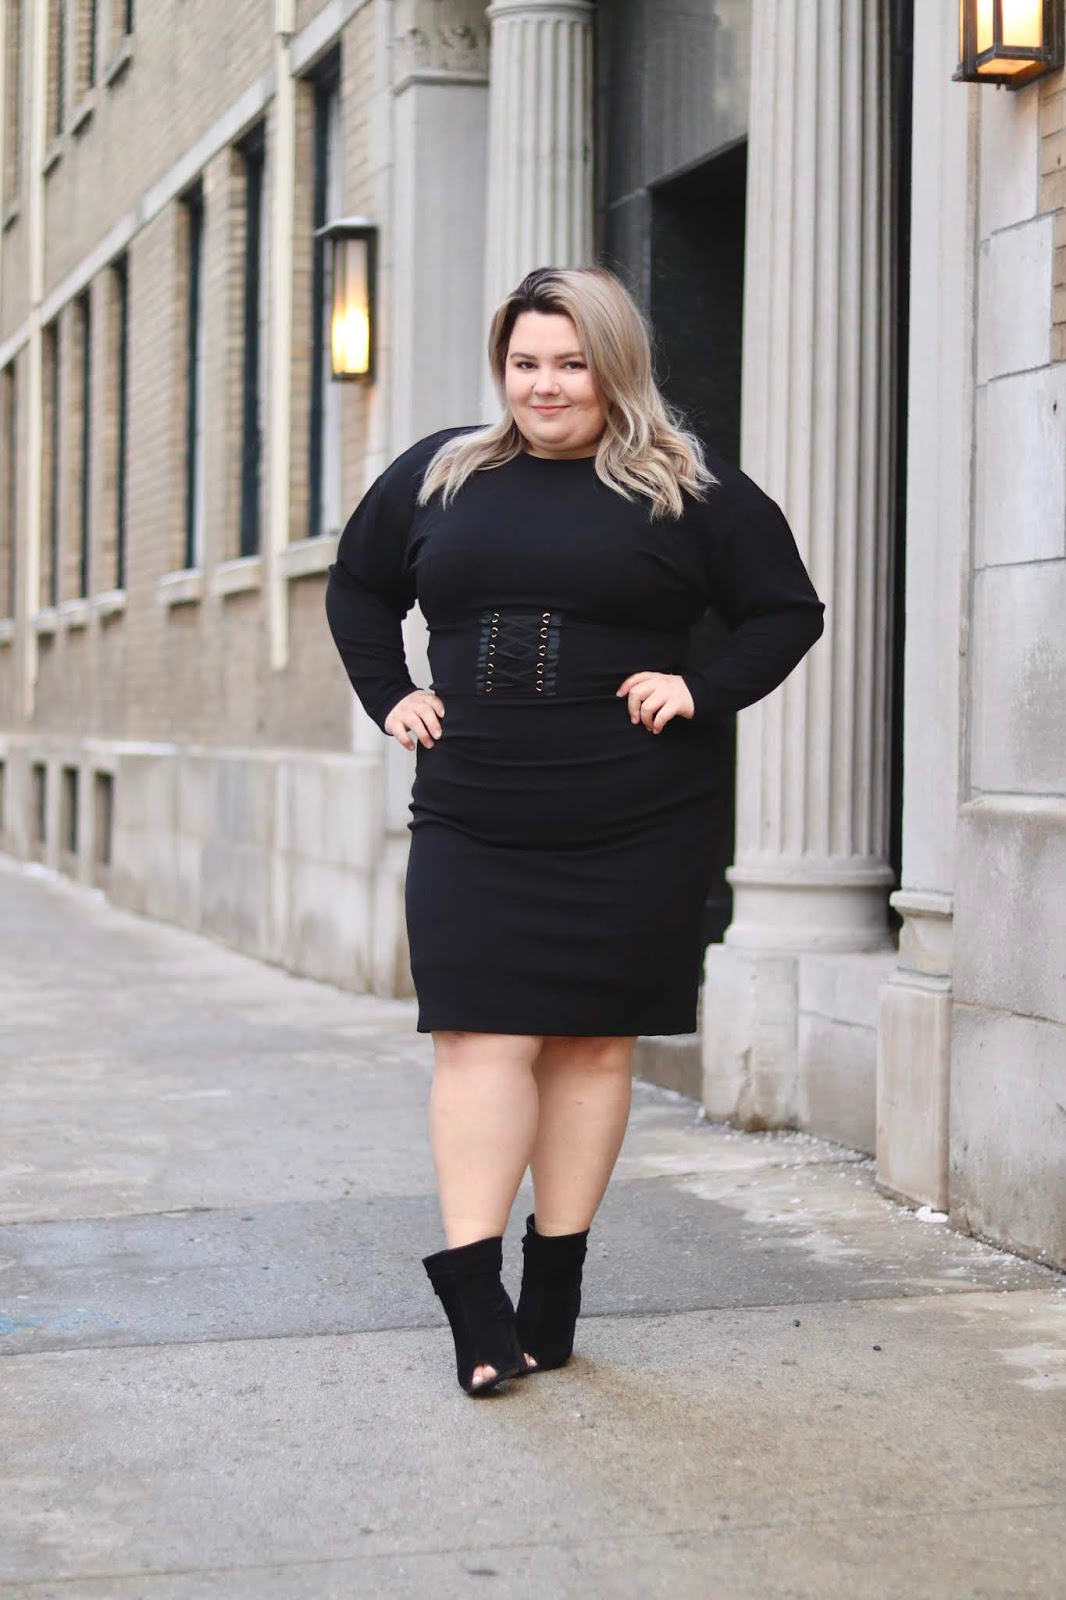 Chicago Plus Size Petite Fashion Blogger, YouTuber, and model Natalie Craig, of Natalie in the City, buys a whole wardrobe for under $200 at Gordmans, including active wear, work wear, casual looks, and sexy dresses for a night out on the town.